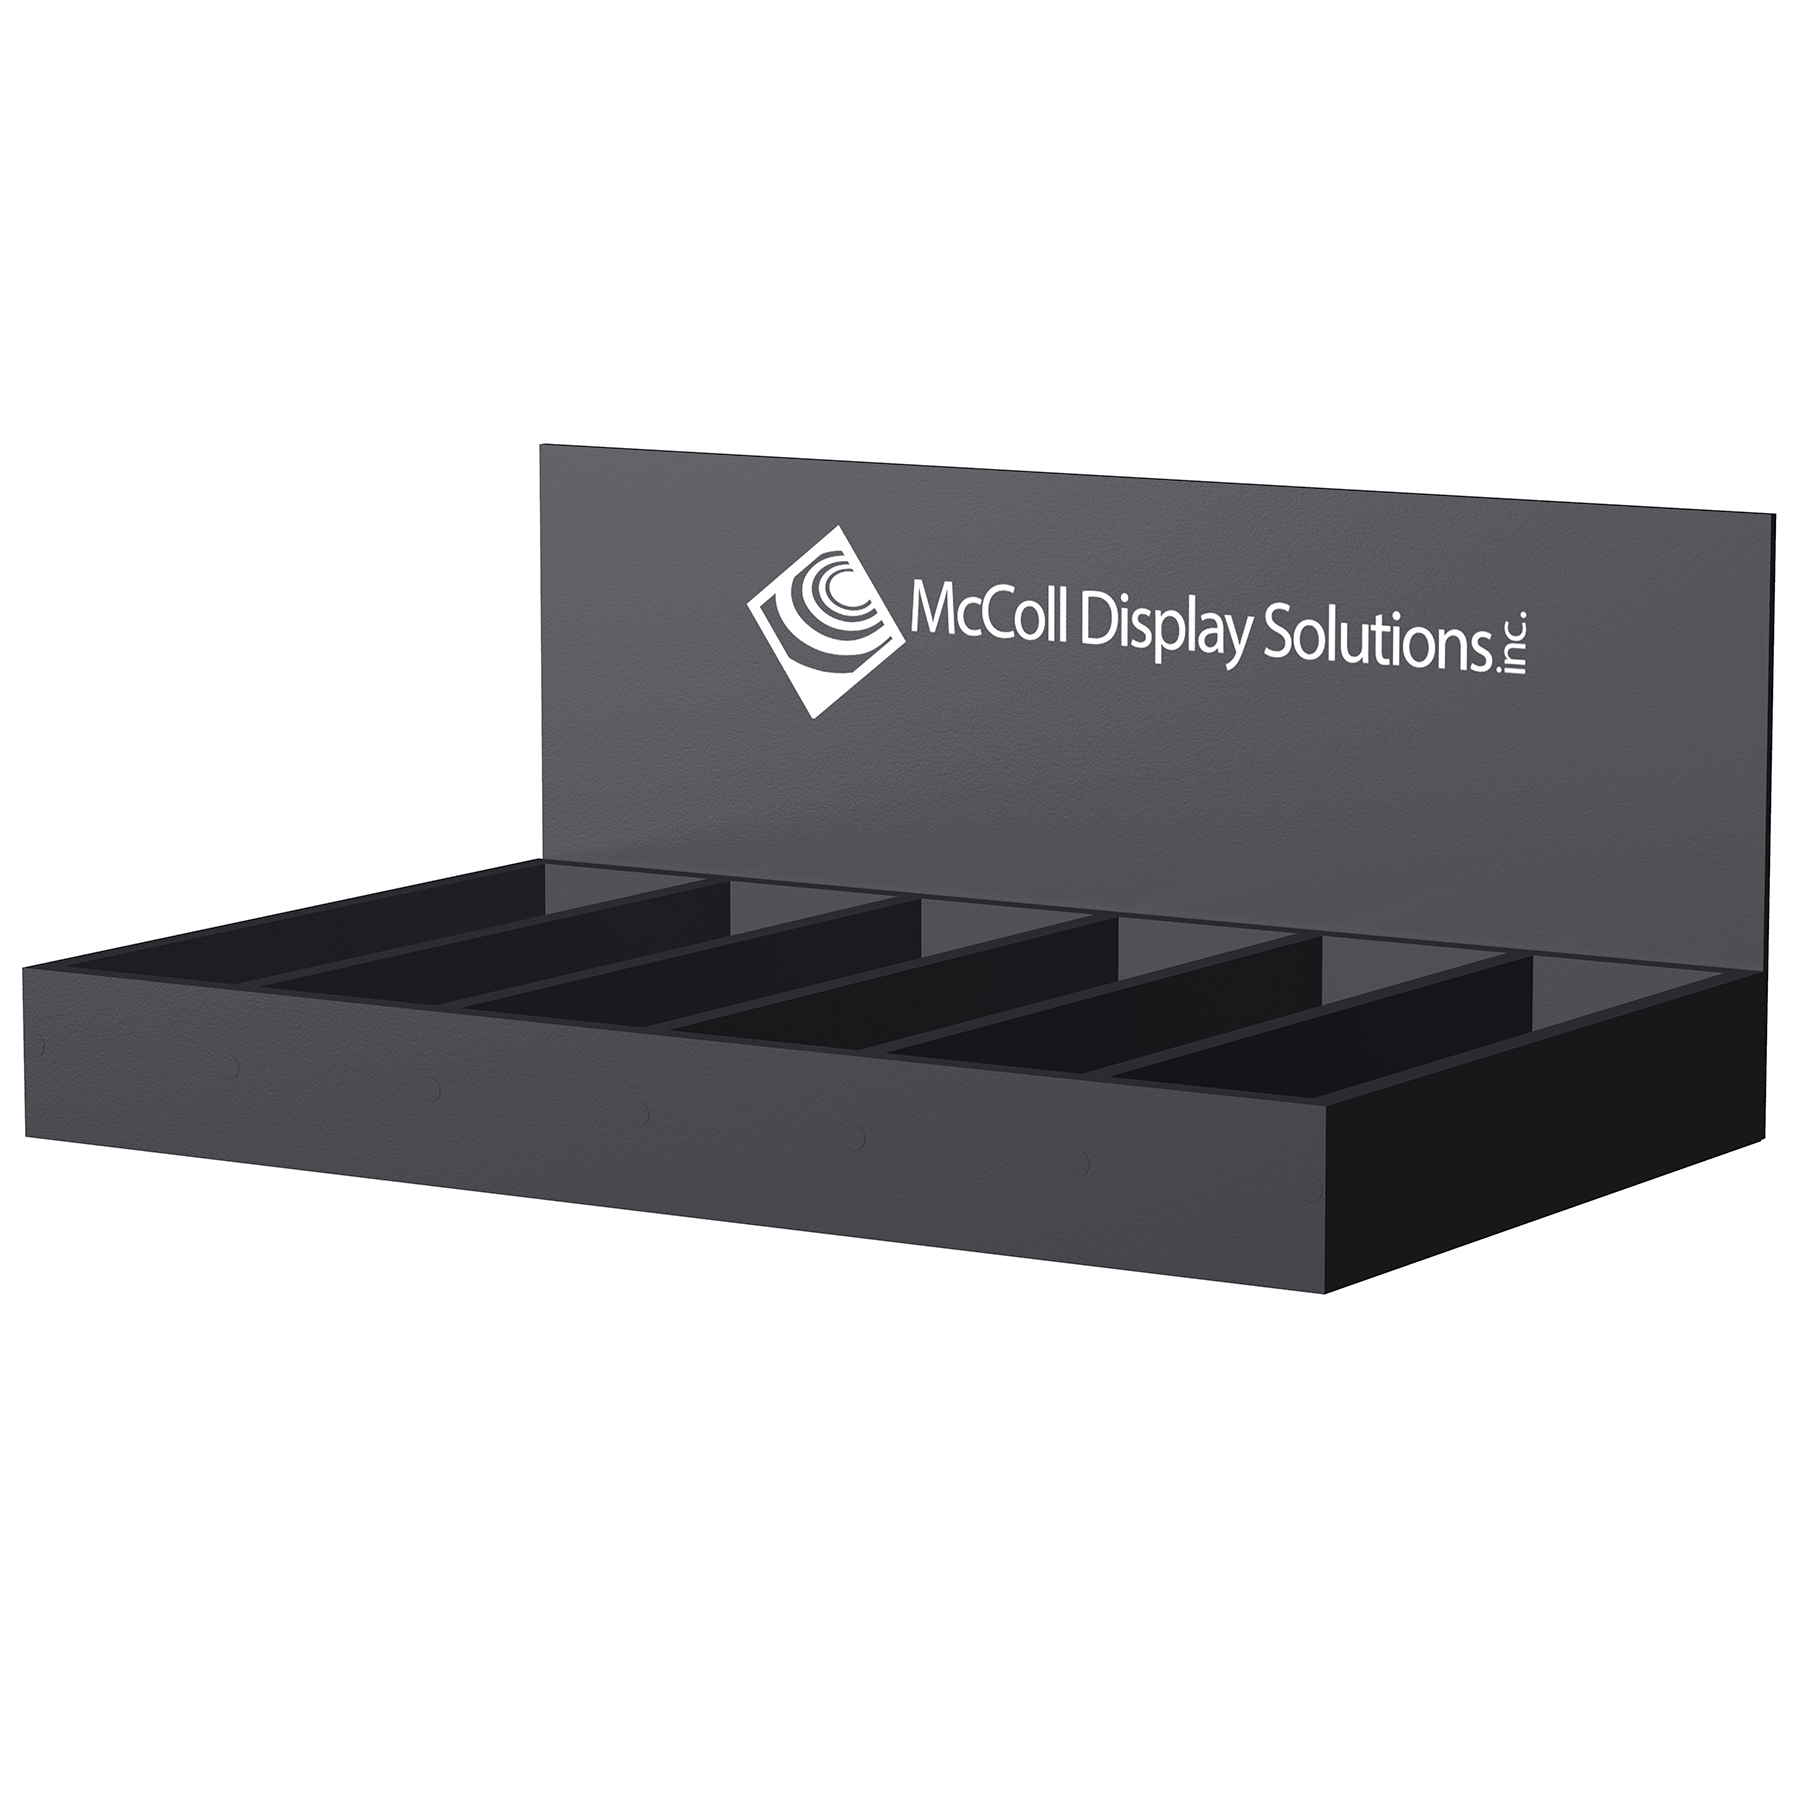 Easy to Customize CD25 Countertop Box Choose Substrate Color and Add Optional Signage Screen Print or Full Color